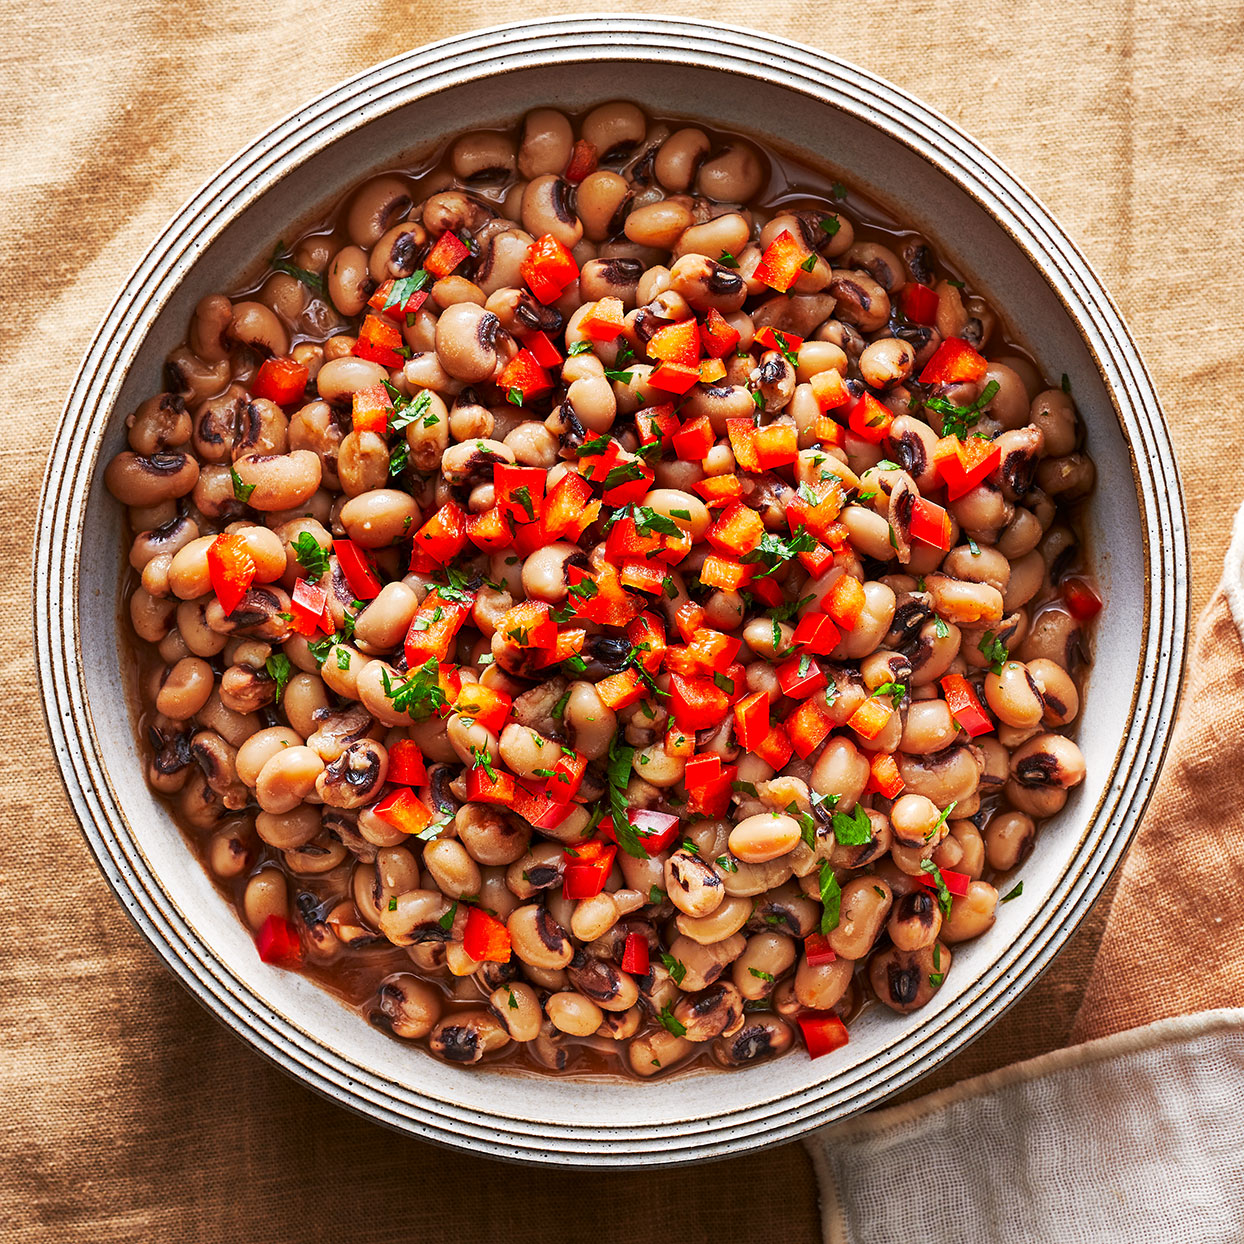 Instant-Pot Vegan Black-Eyed Peas